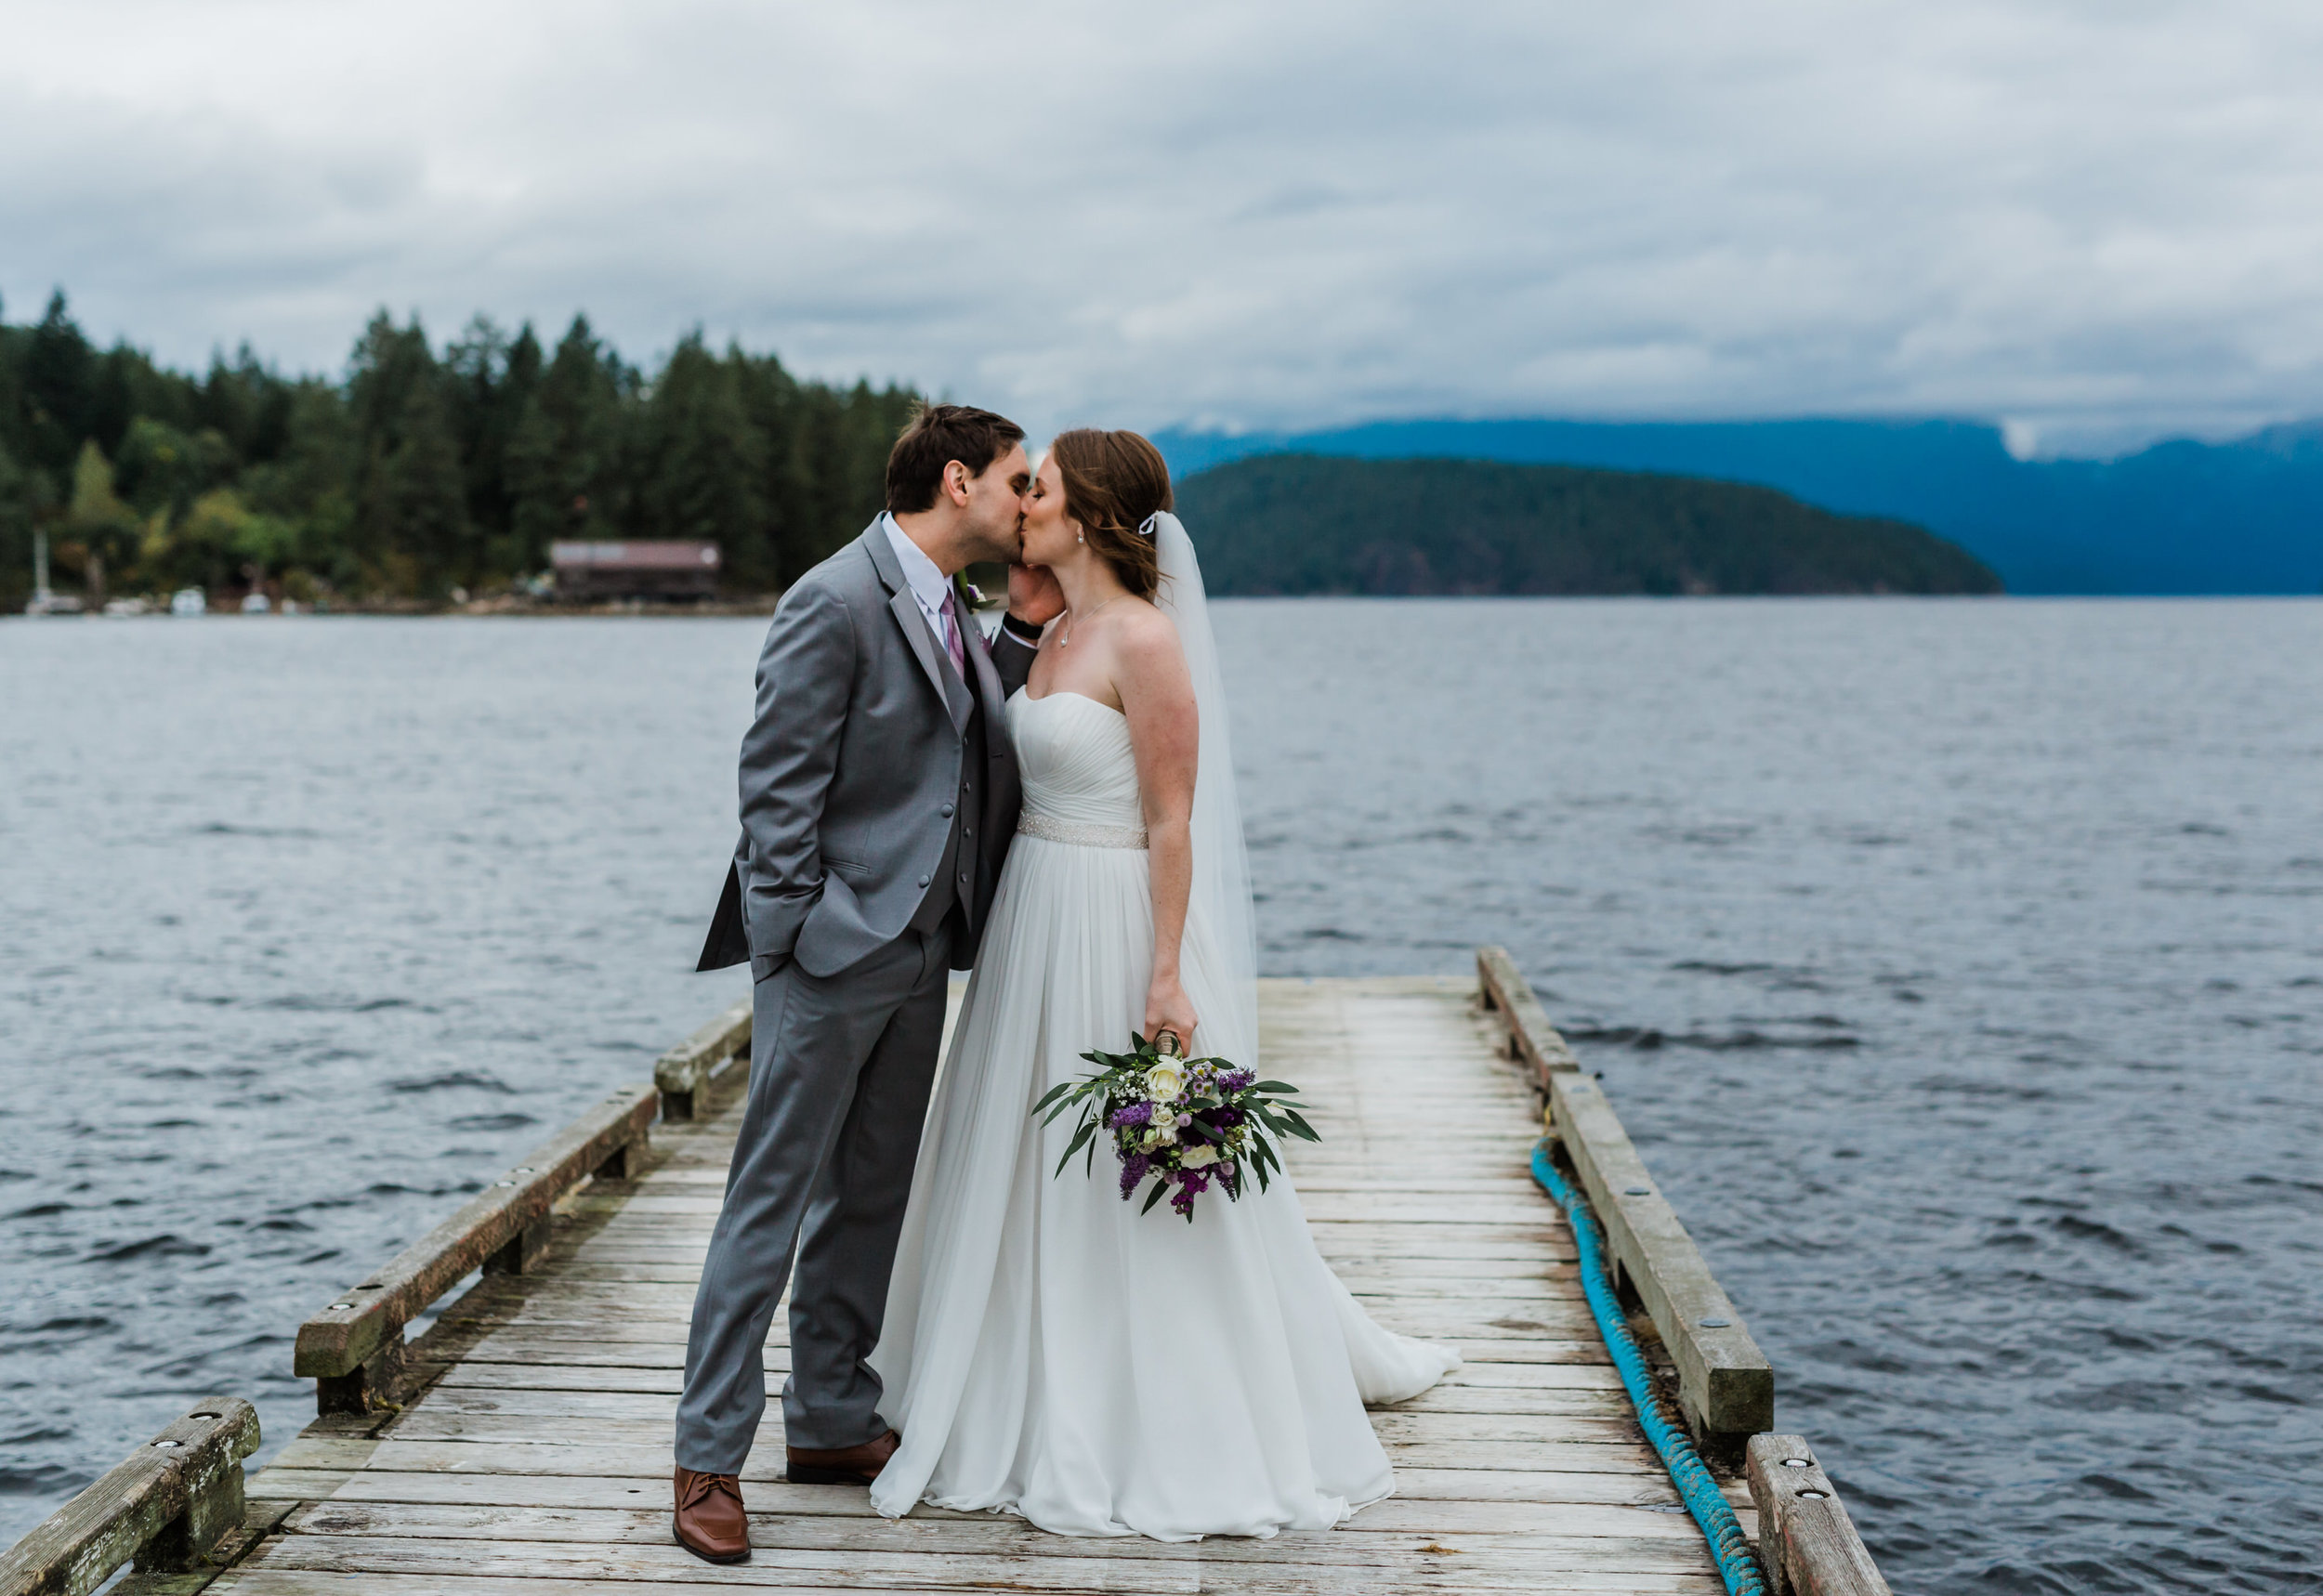 West Coast Wilderness Lodge Wedding Photos - Vancouver Wedding Photographer & Videographer - Sunshine Coast Wedding Photos - Sunshine Coast Wedding Photographer - Jennifer Picard Photography - IMG_6656.jpg